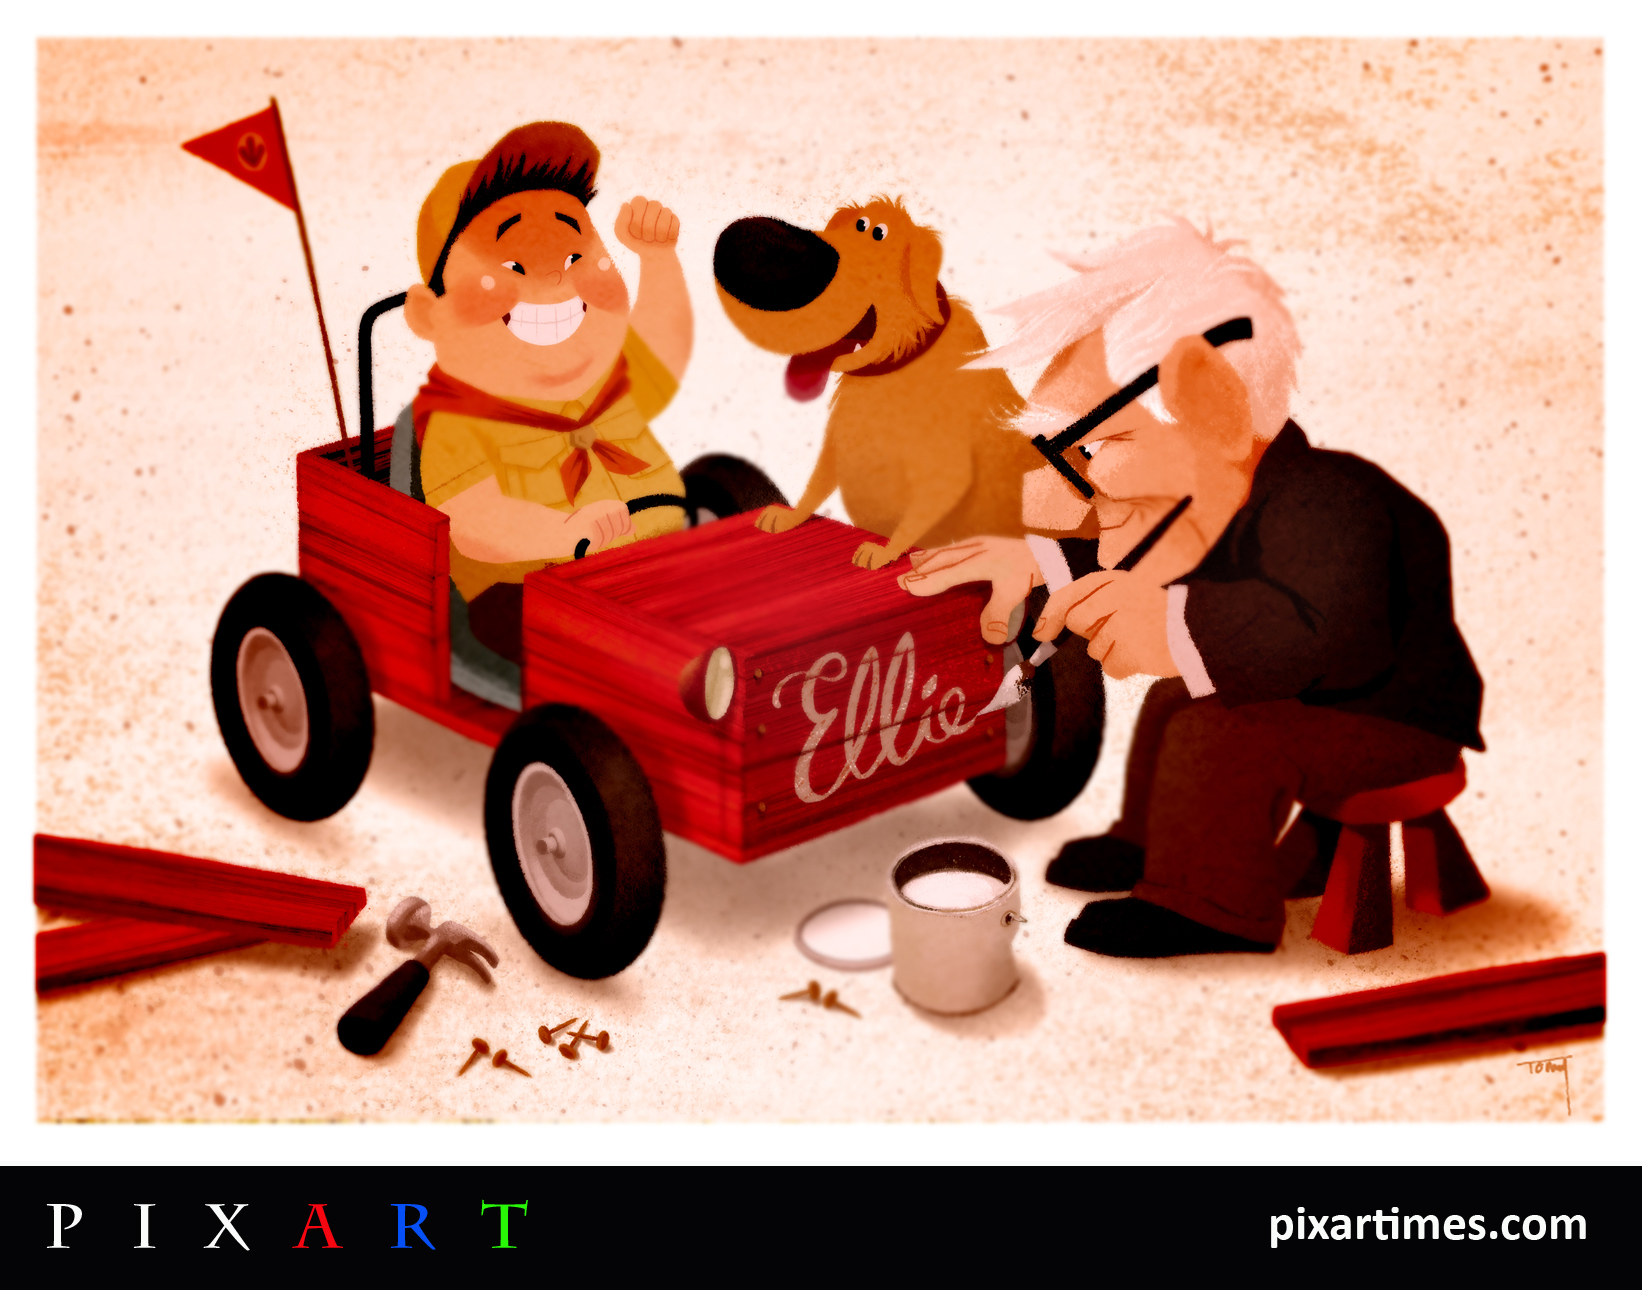 Pixart: January Feature – Carl and Russell